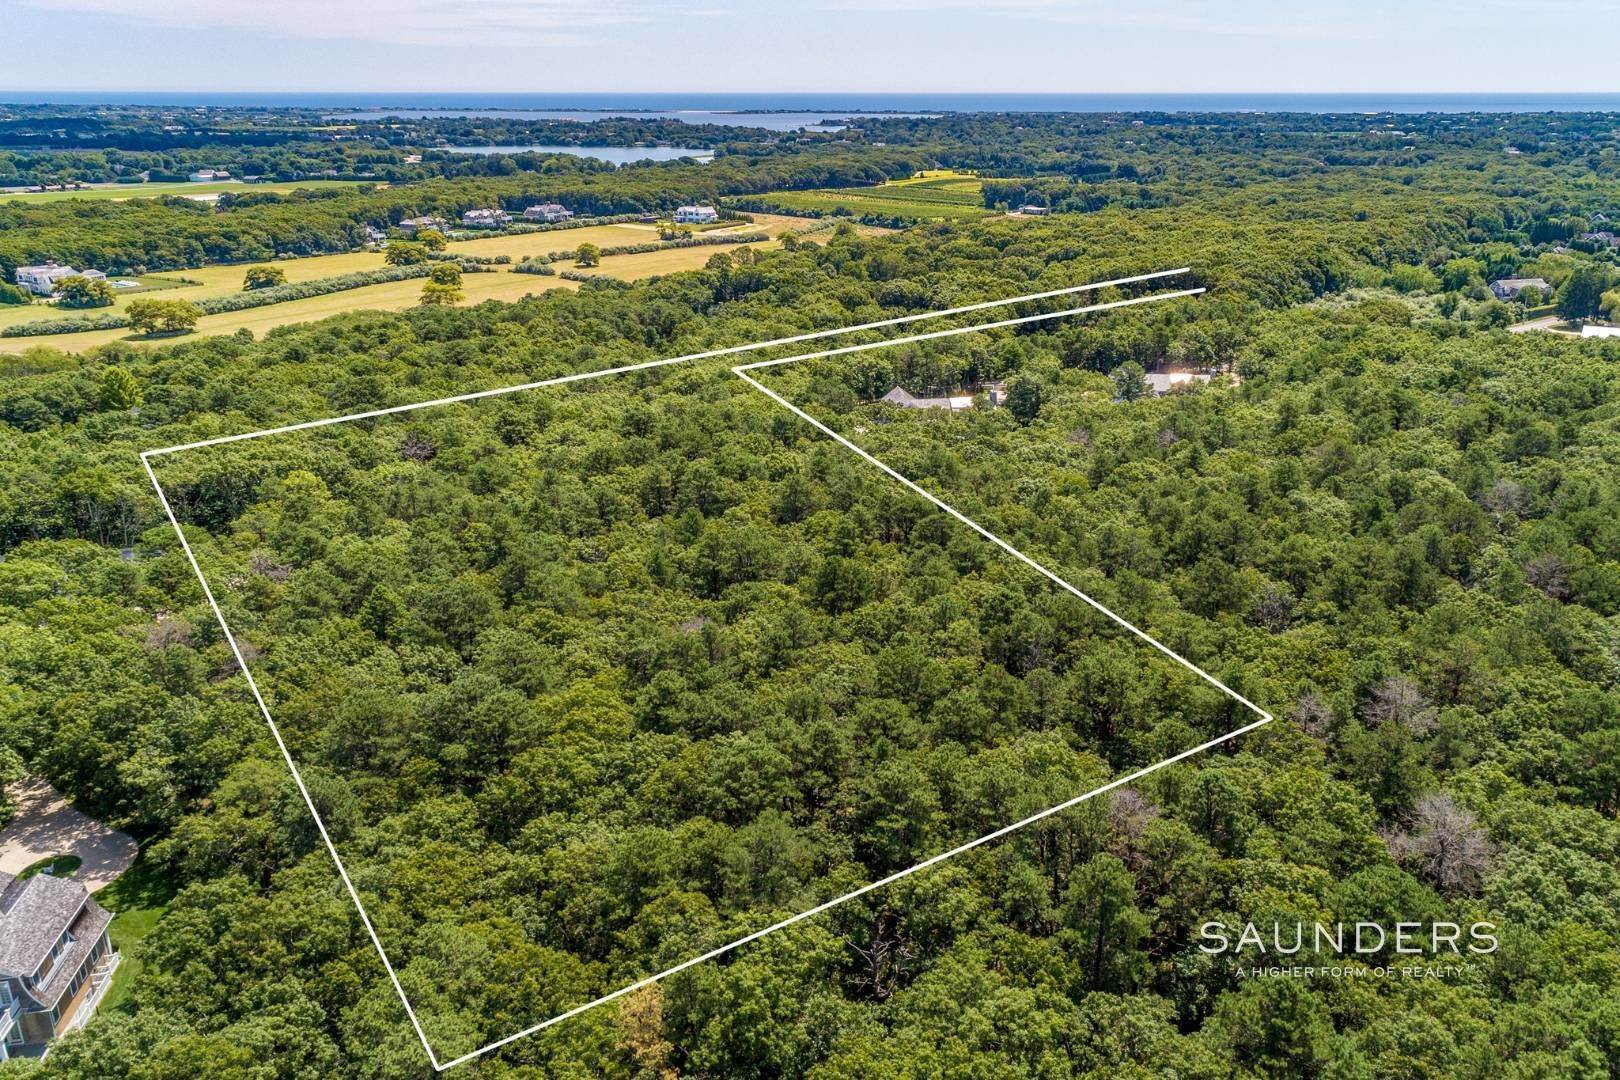 Land at End User's Dream, Builder's Delight 417 Edge Of Woods Road, Southampton, Southampton Town, NY 11968